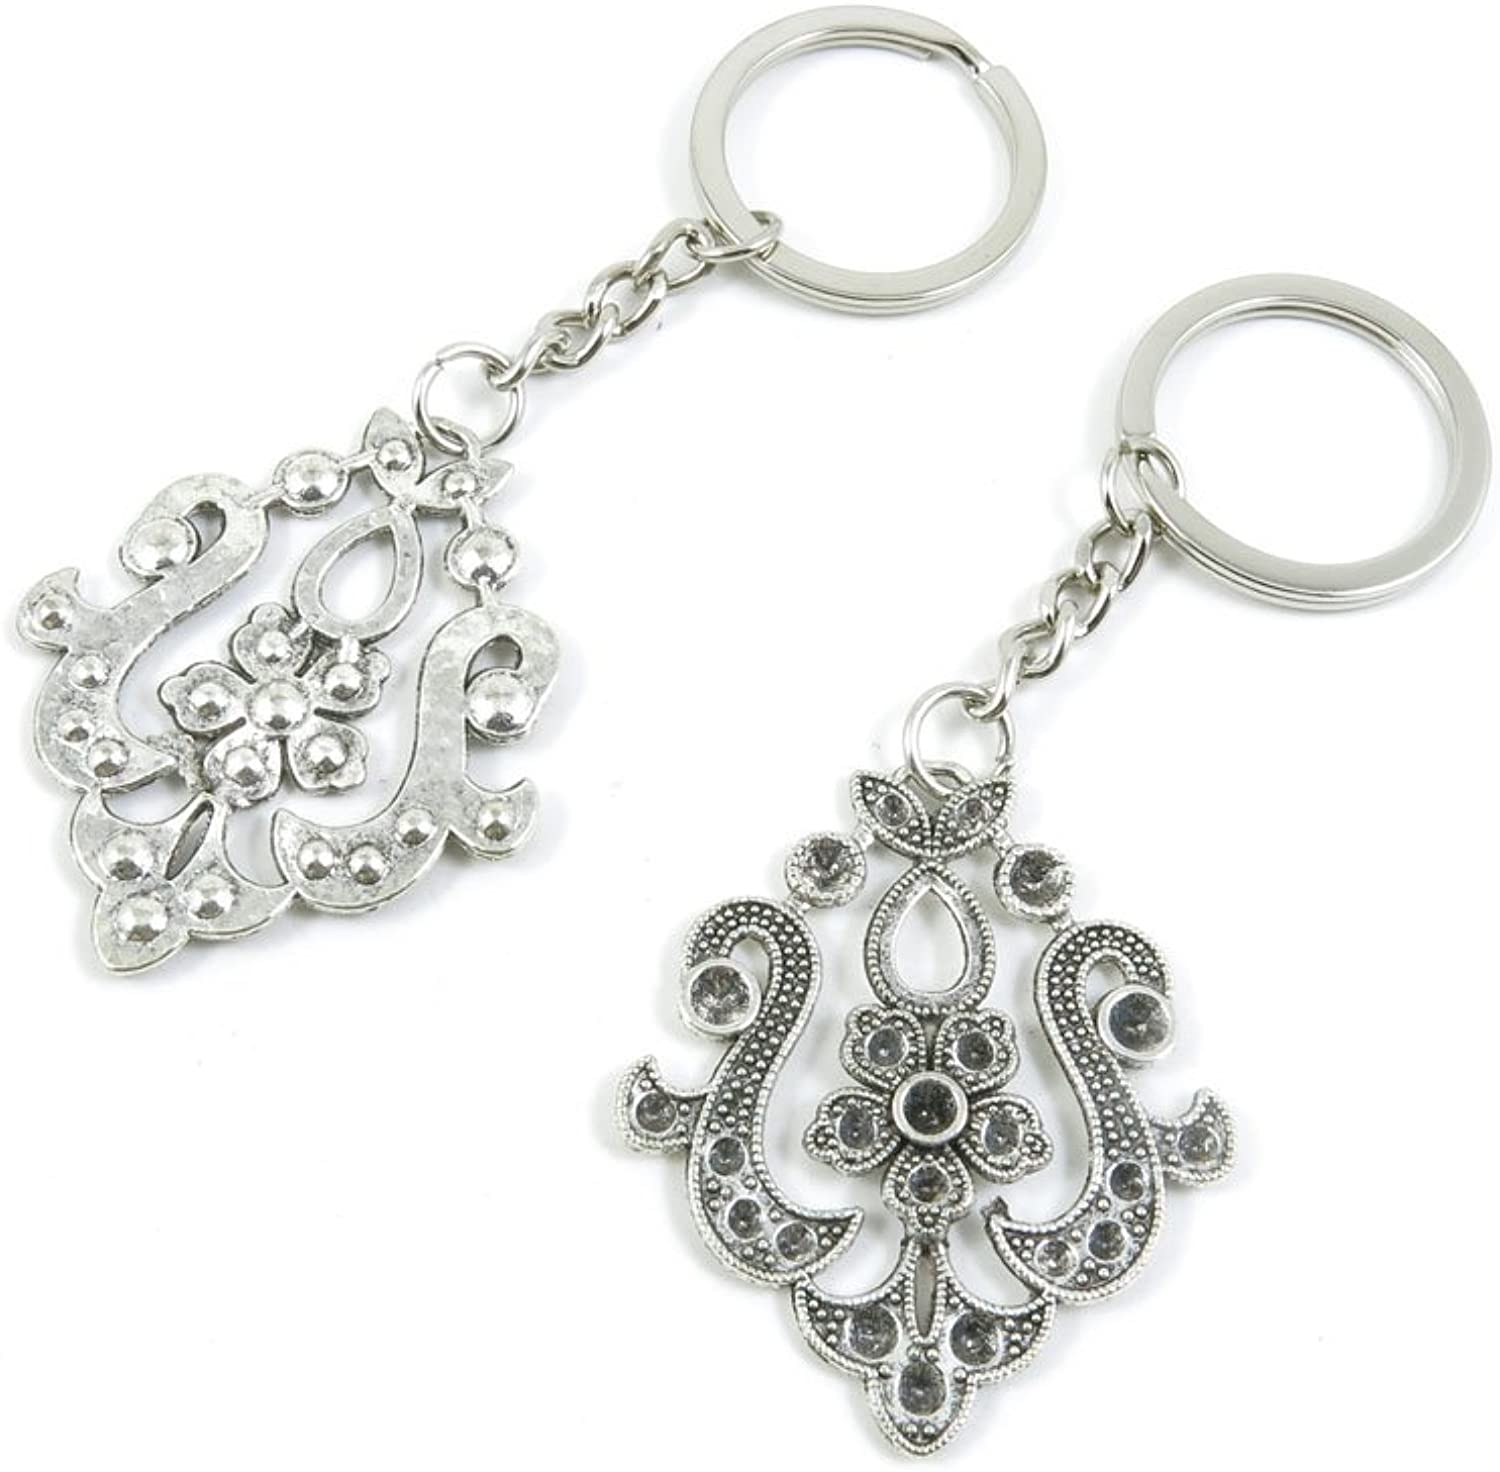 50 Pieces Keychain Keyring Door Car Key Chain Ring Tag Charms Bulk Supply Jewelry Making Clasp Findings W5NH1Y Flower Drop